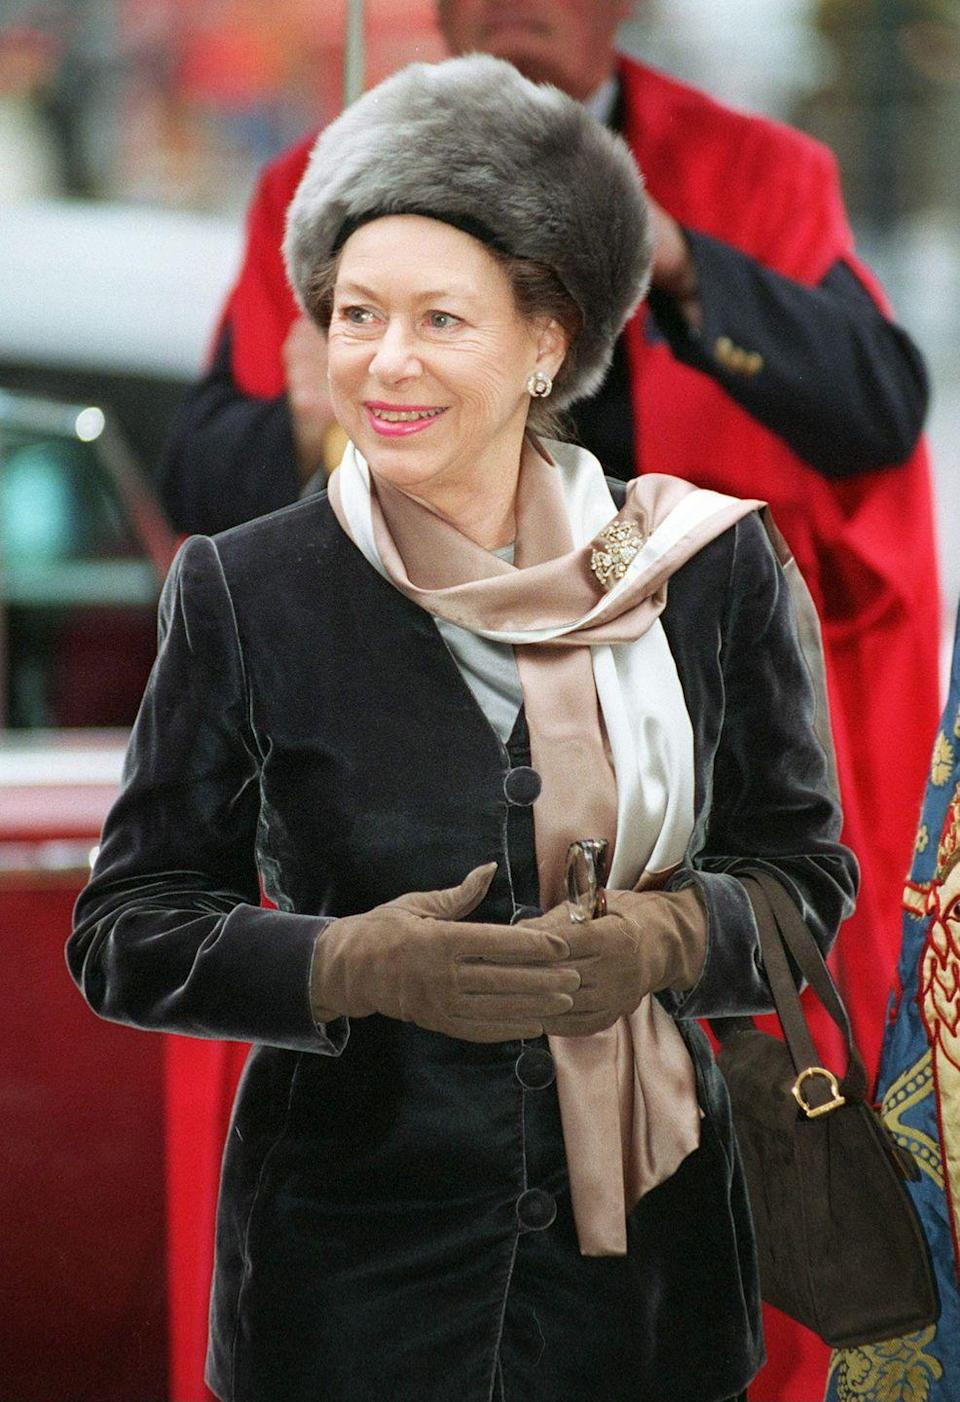 <p>Princess Margaret arrived for a service at Westminster Abbey to celebrate the 50th anniversary of the Founding of the National Association of Almshouses, a charity that helps provide housing to people.</p>